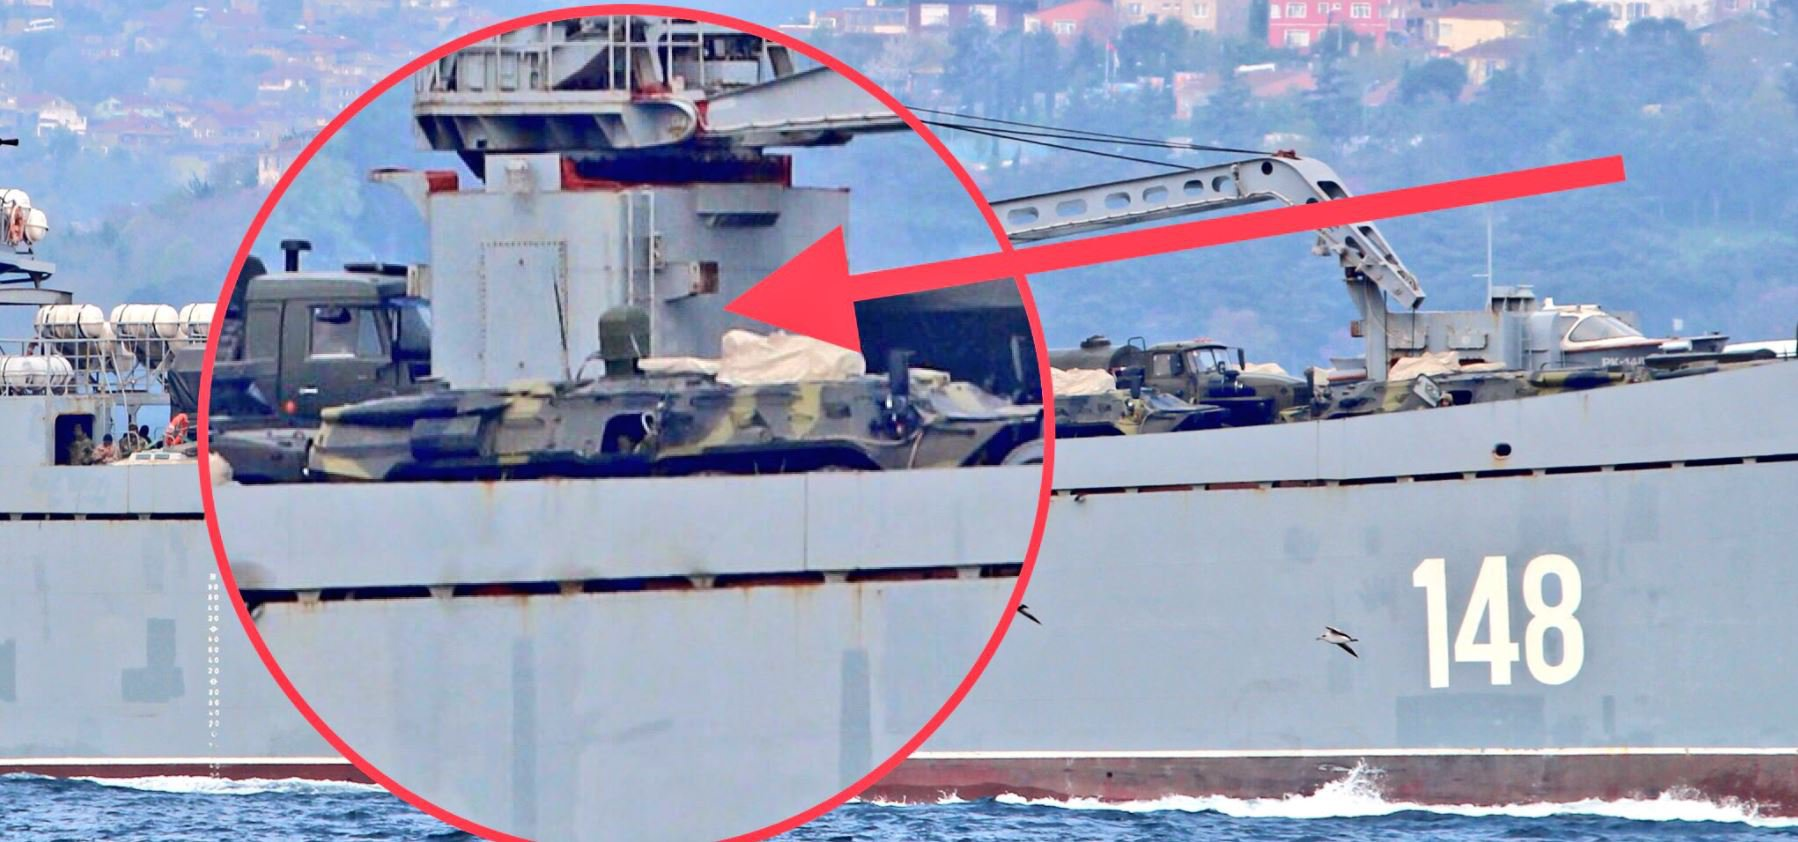 Project 117 Alligator-class landing ship was spotted at Bosphorus, Turkey en-route to Syria on Sunday Taken without permission